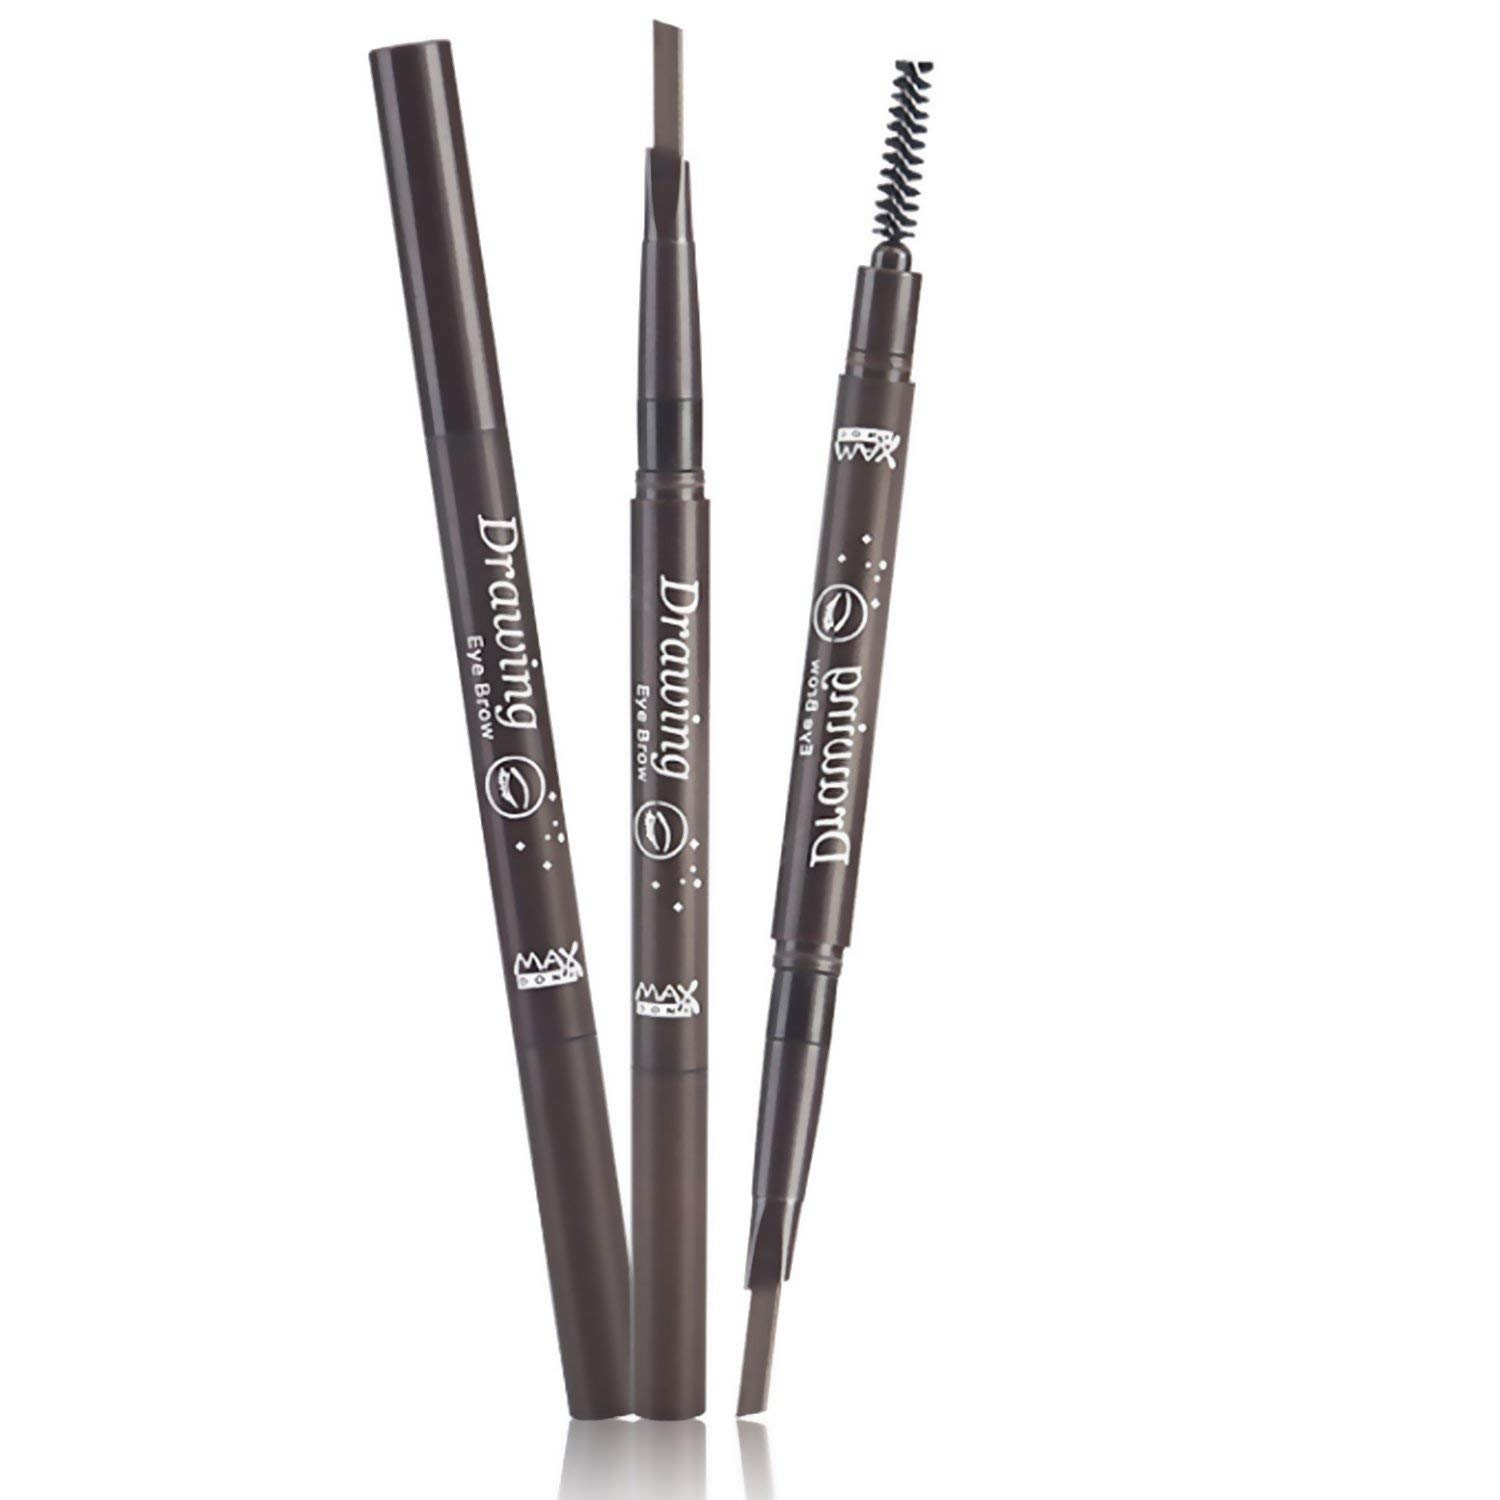 Eyebrow Pencil in Diamond-shape, Waterproof and longlasting, Retractable and Automatic body, Double-ends With Eyebrow Brush(Comb), 5 Colors: Black, Brown, Light Brown, Dark Brown, Grey